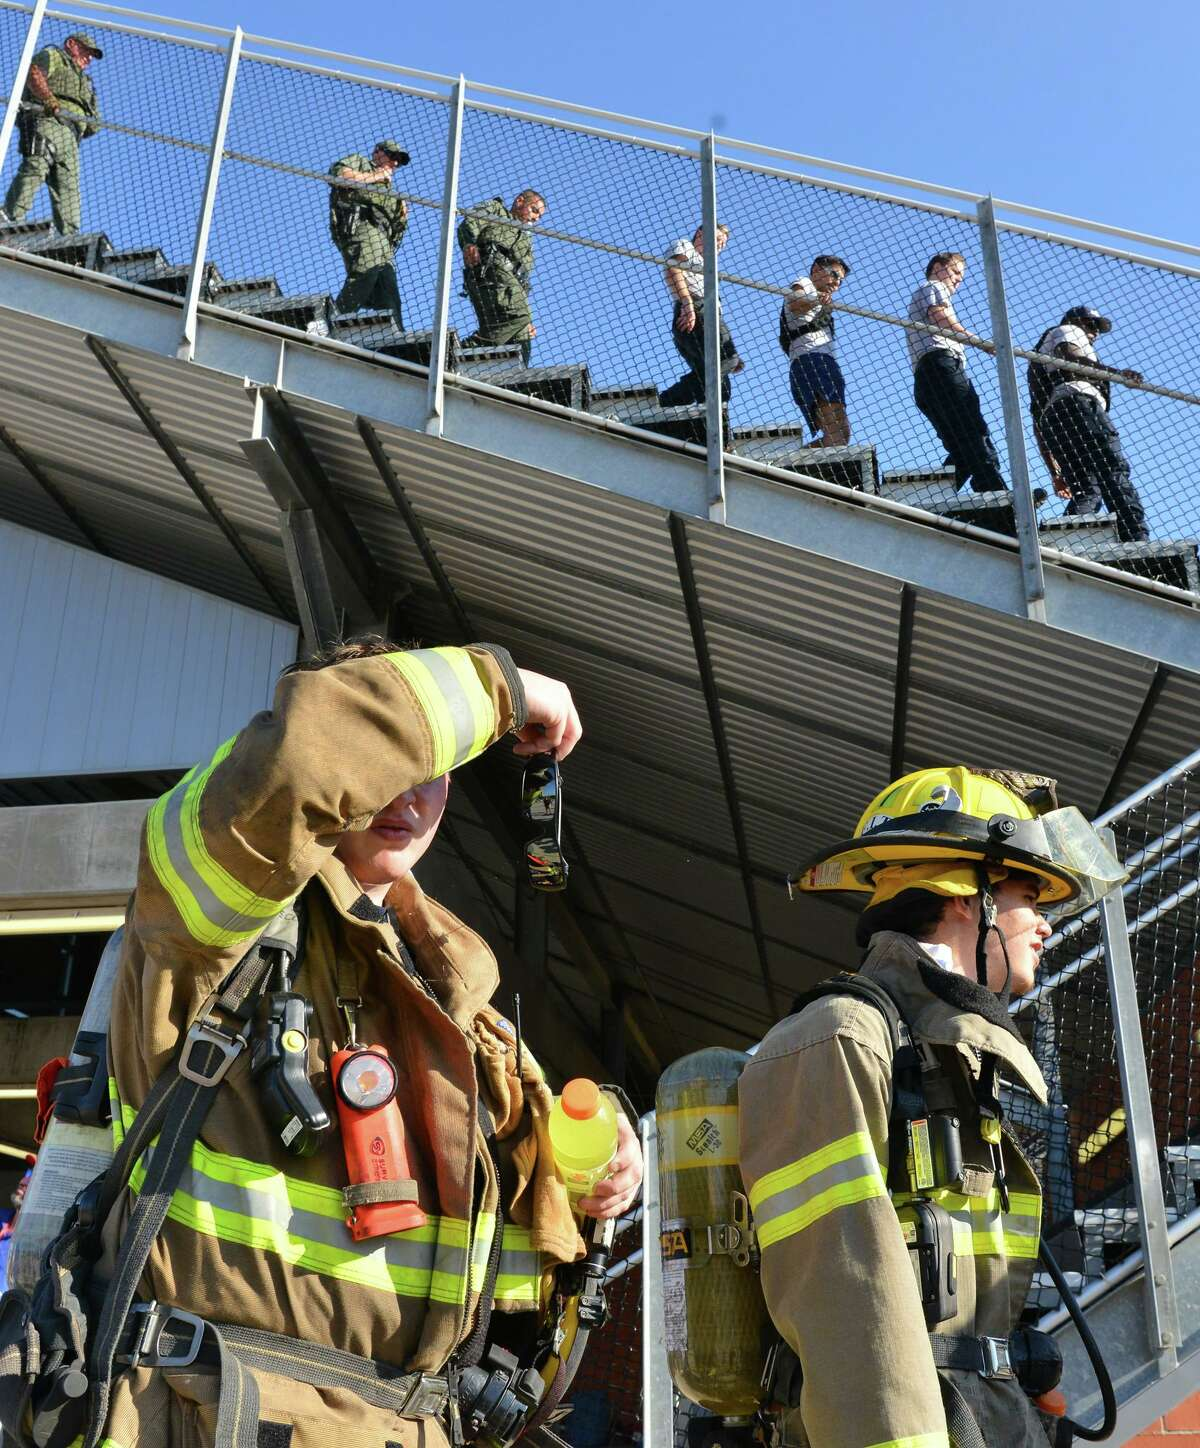 A first responder wipes sweat during San Antonio's 110 9/11 Memorial Climb on Saturday morning at Heroes Stadium.